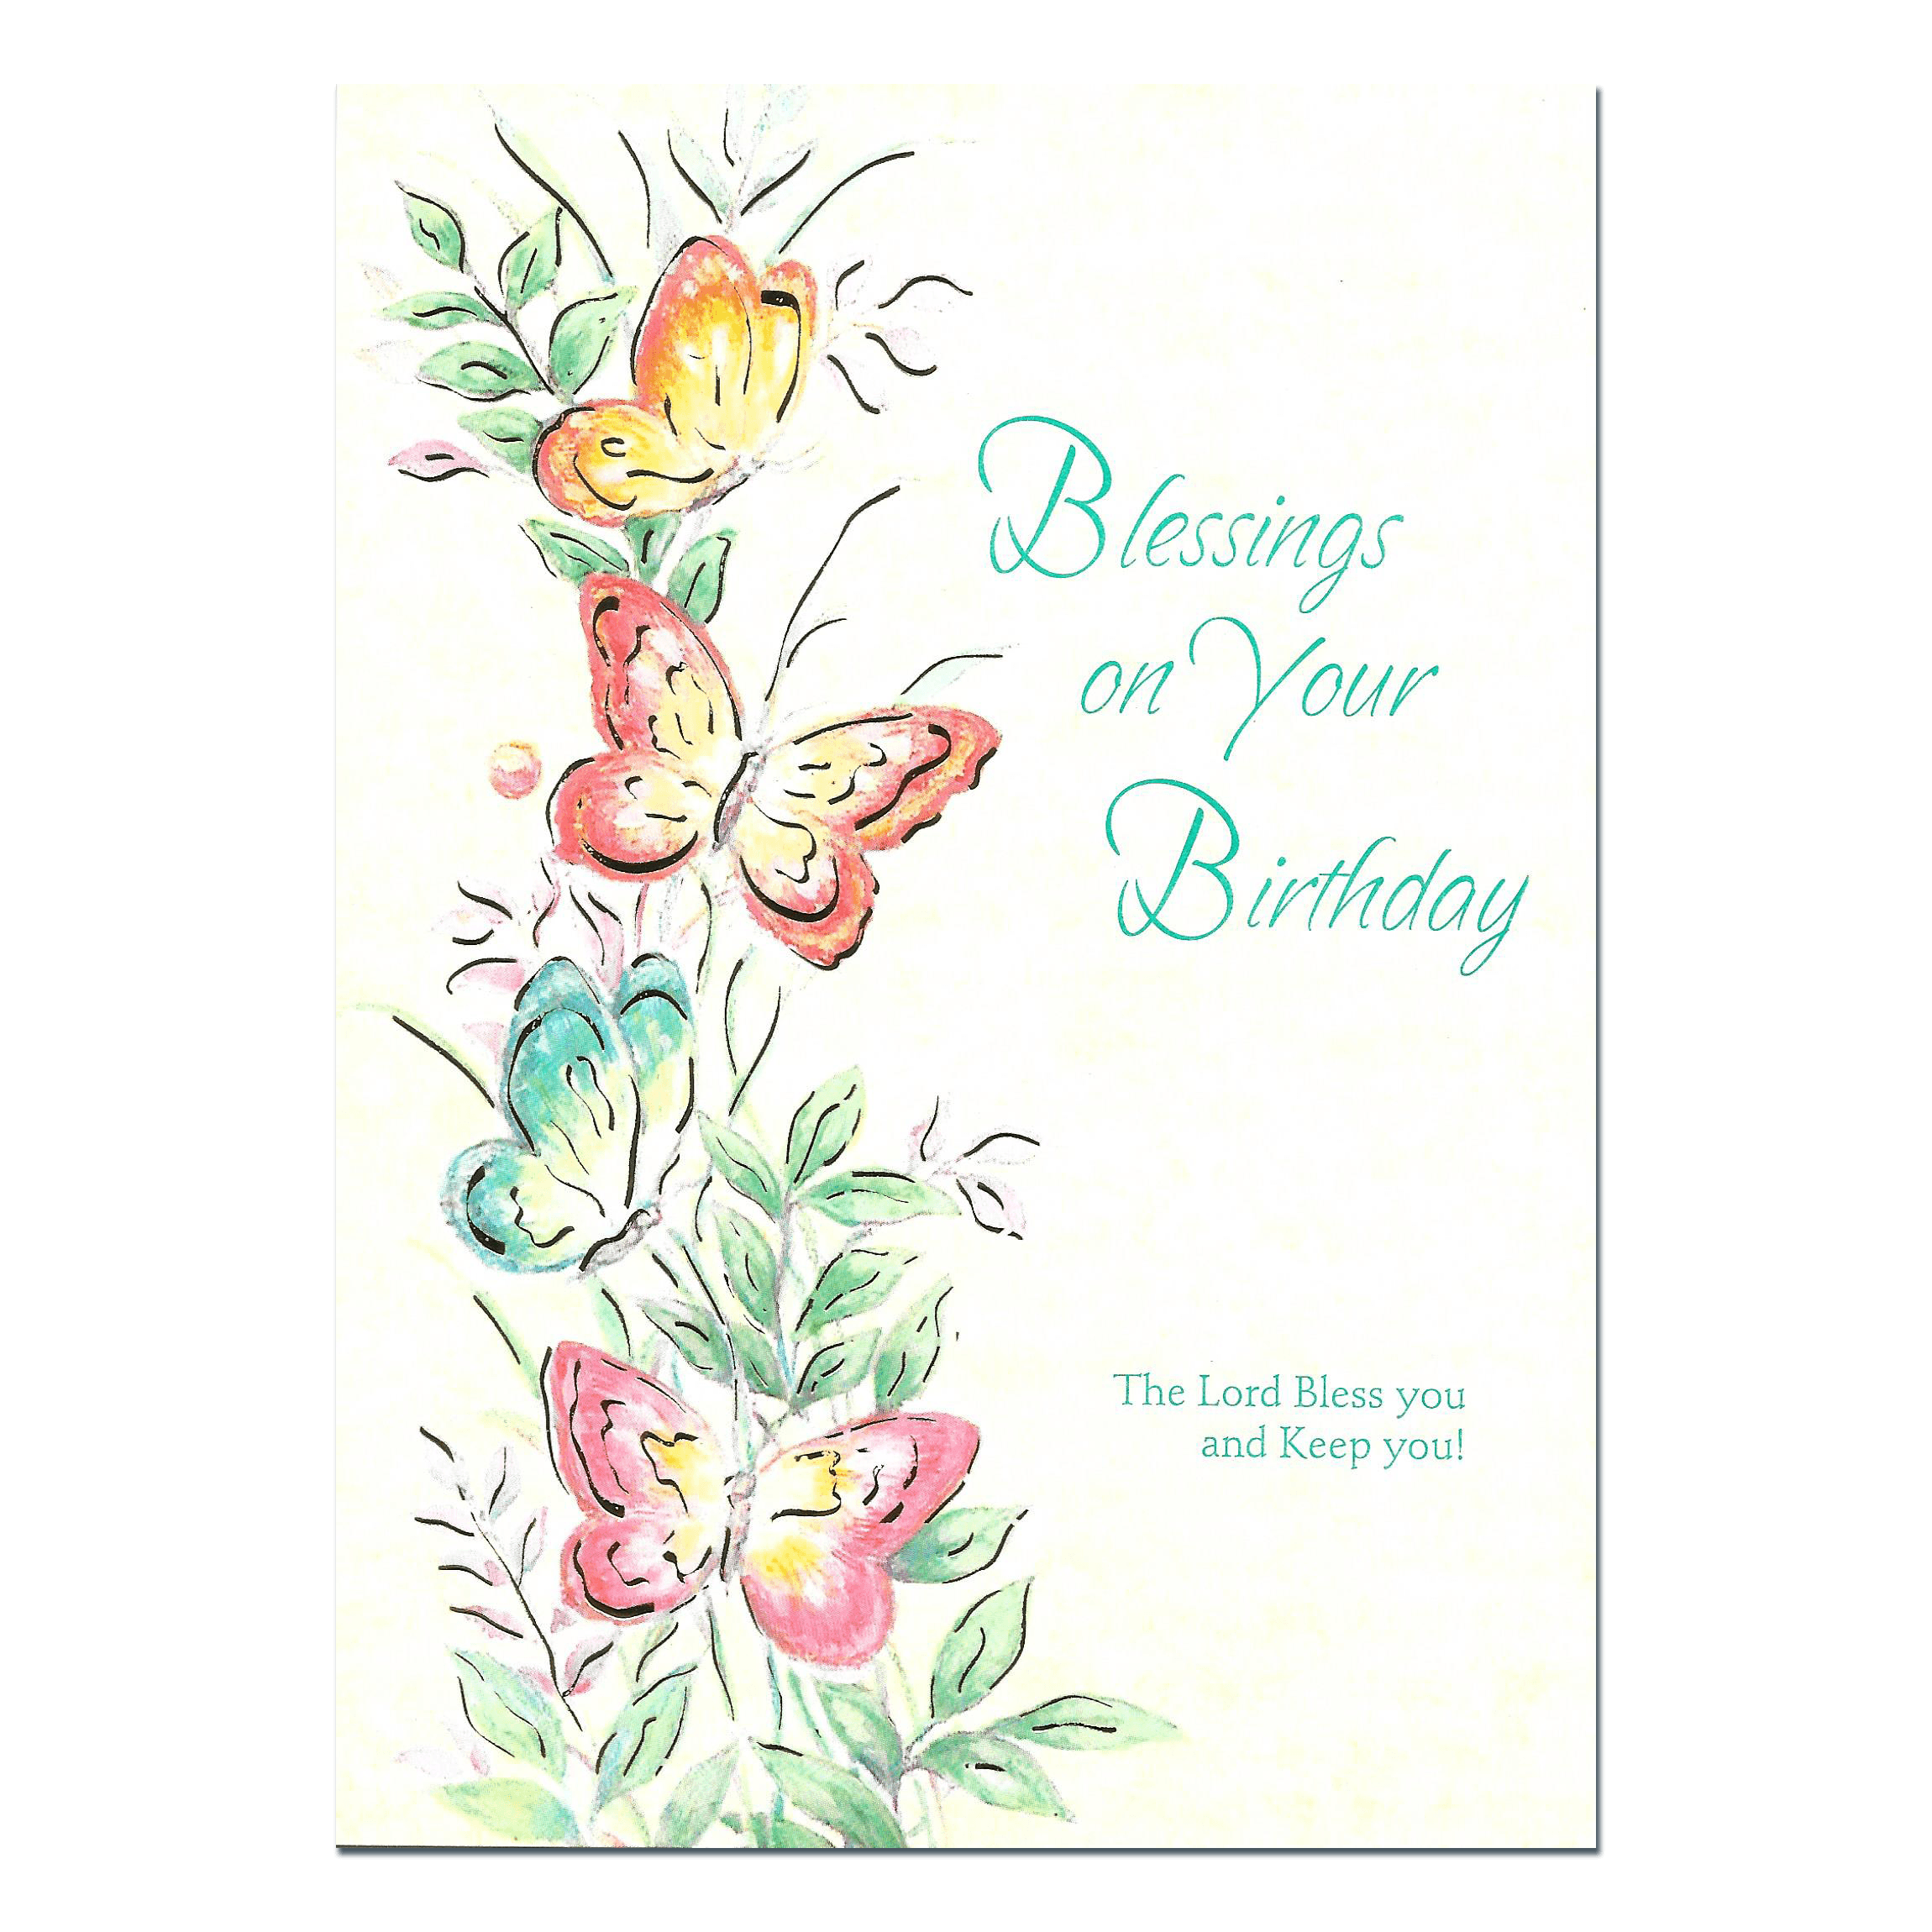 Birthday Blessings flowers & bible verse - Send this ...  |Birthday Blessings